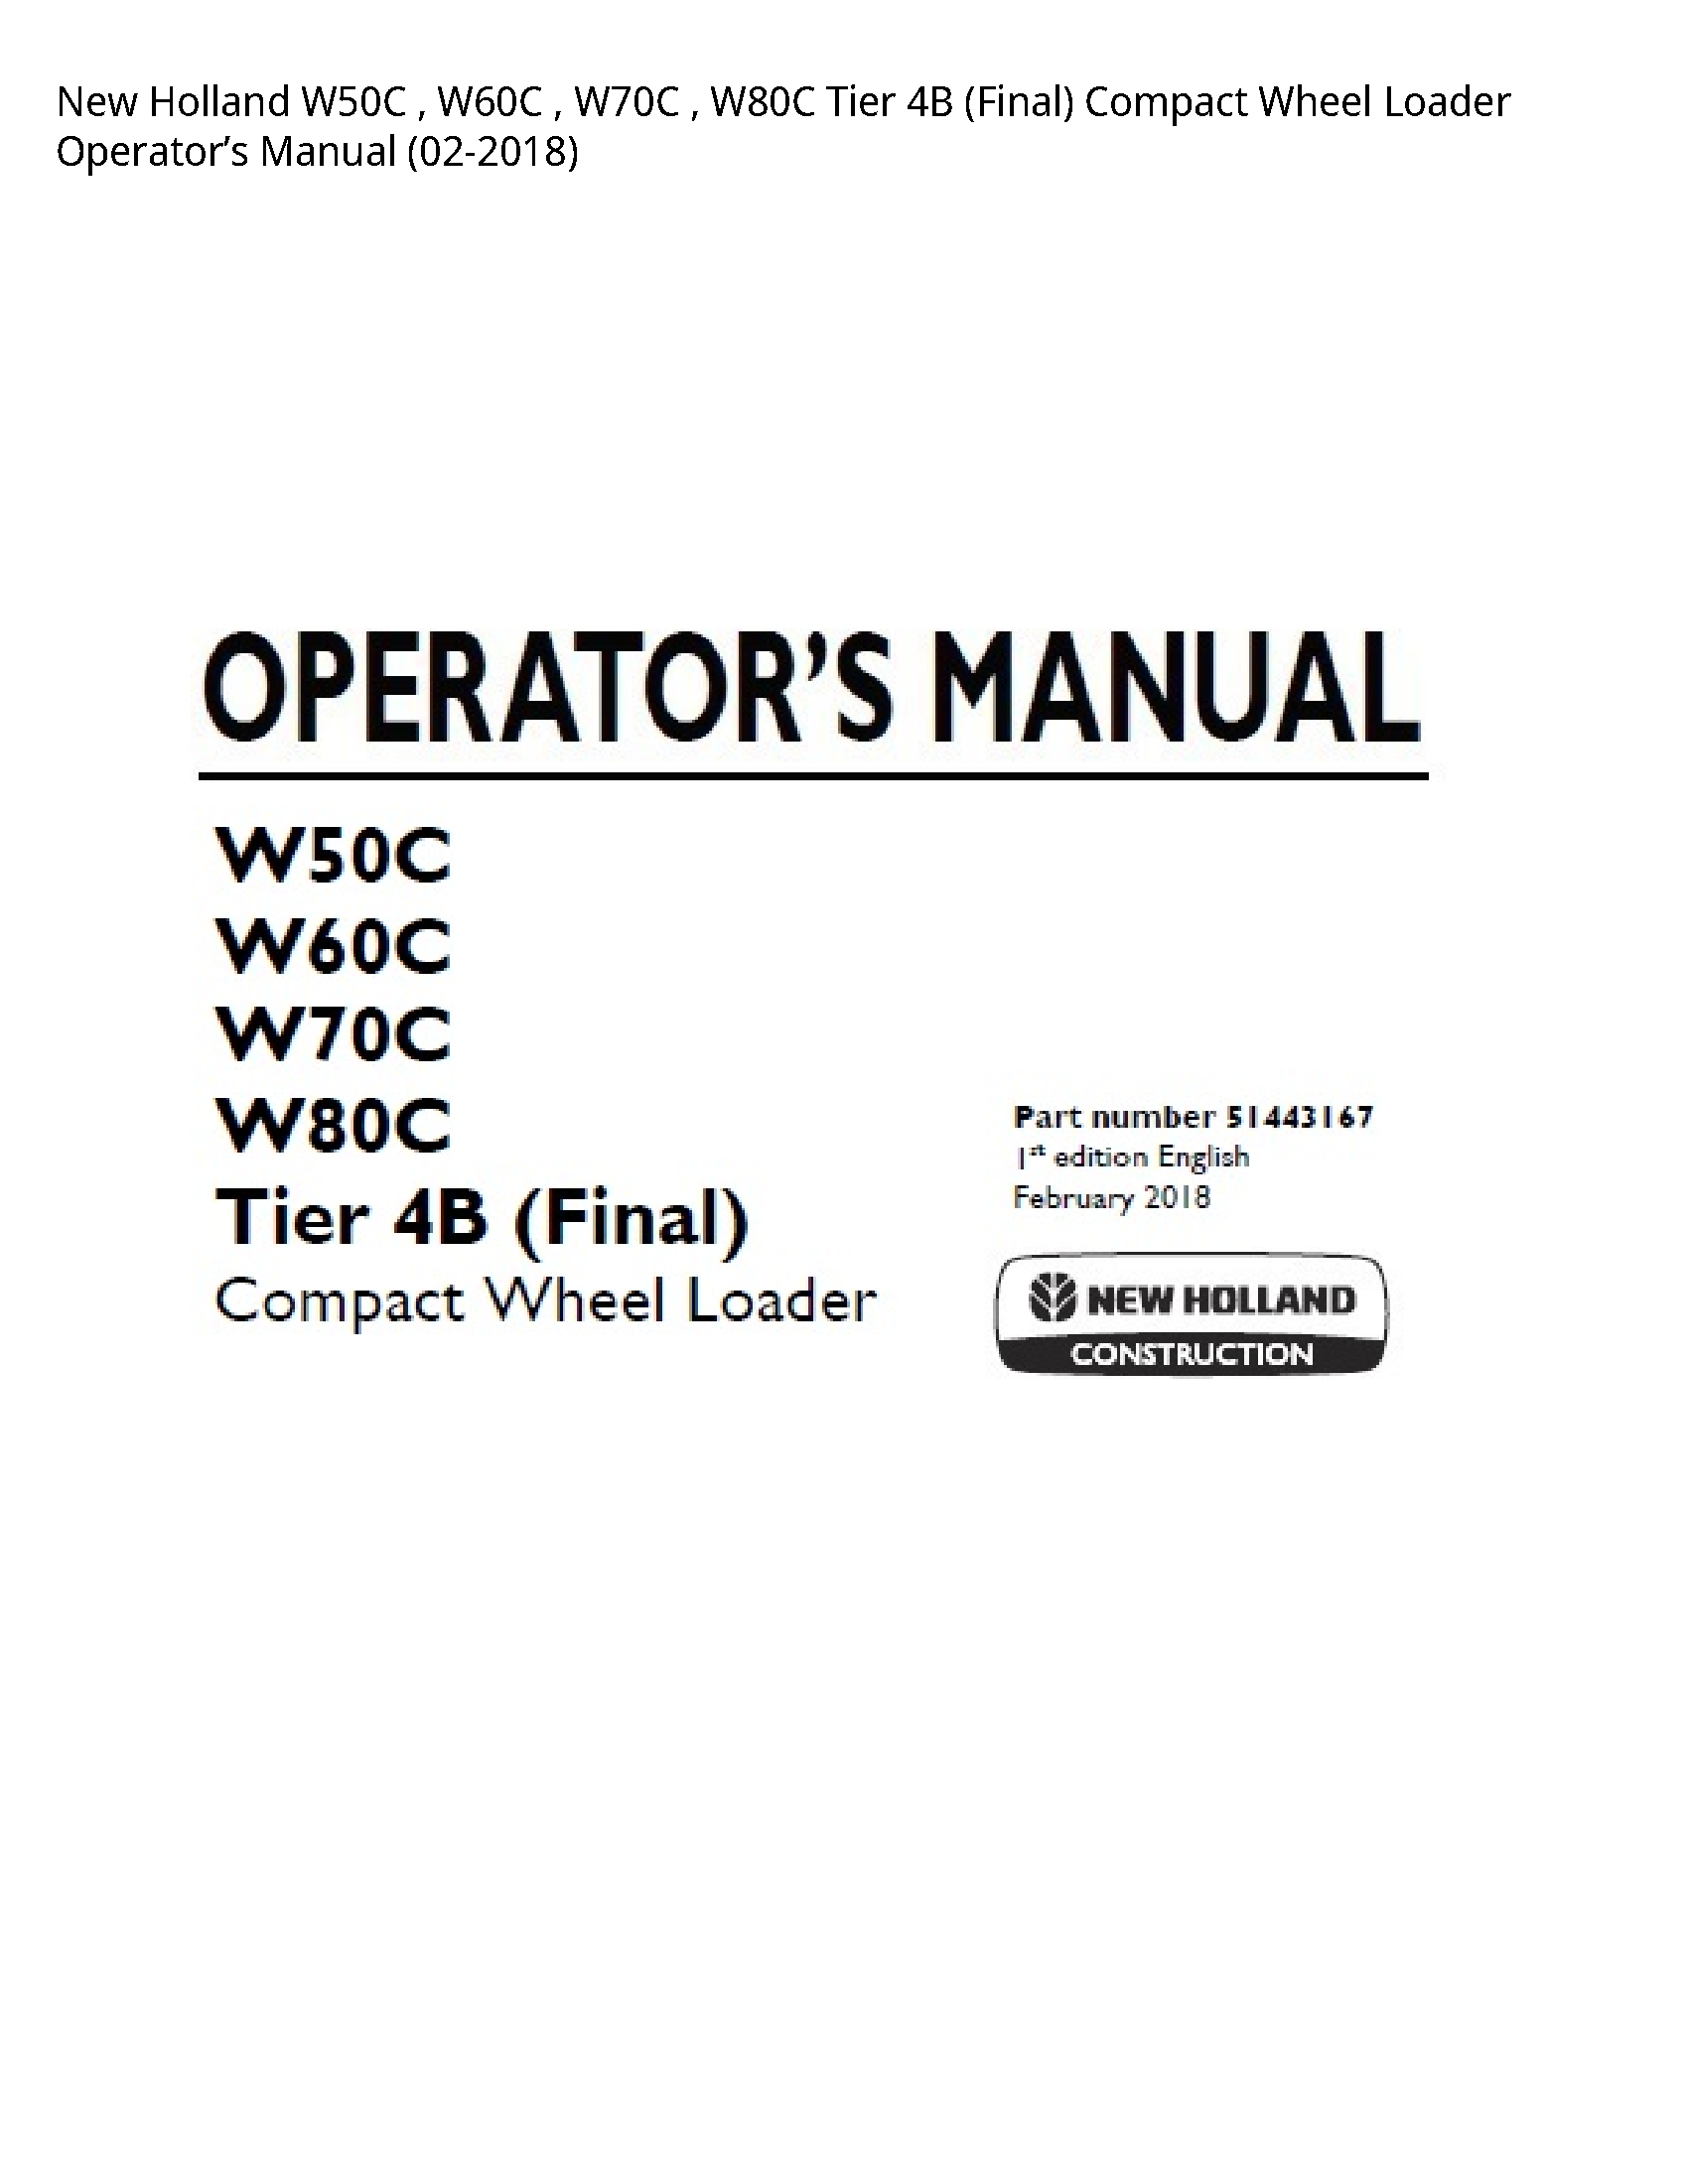 New Holland W50C Tier (Final) Compact Wheel Loader Operator's manual